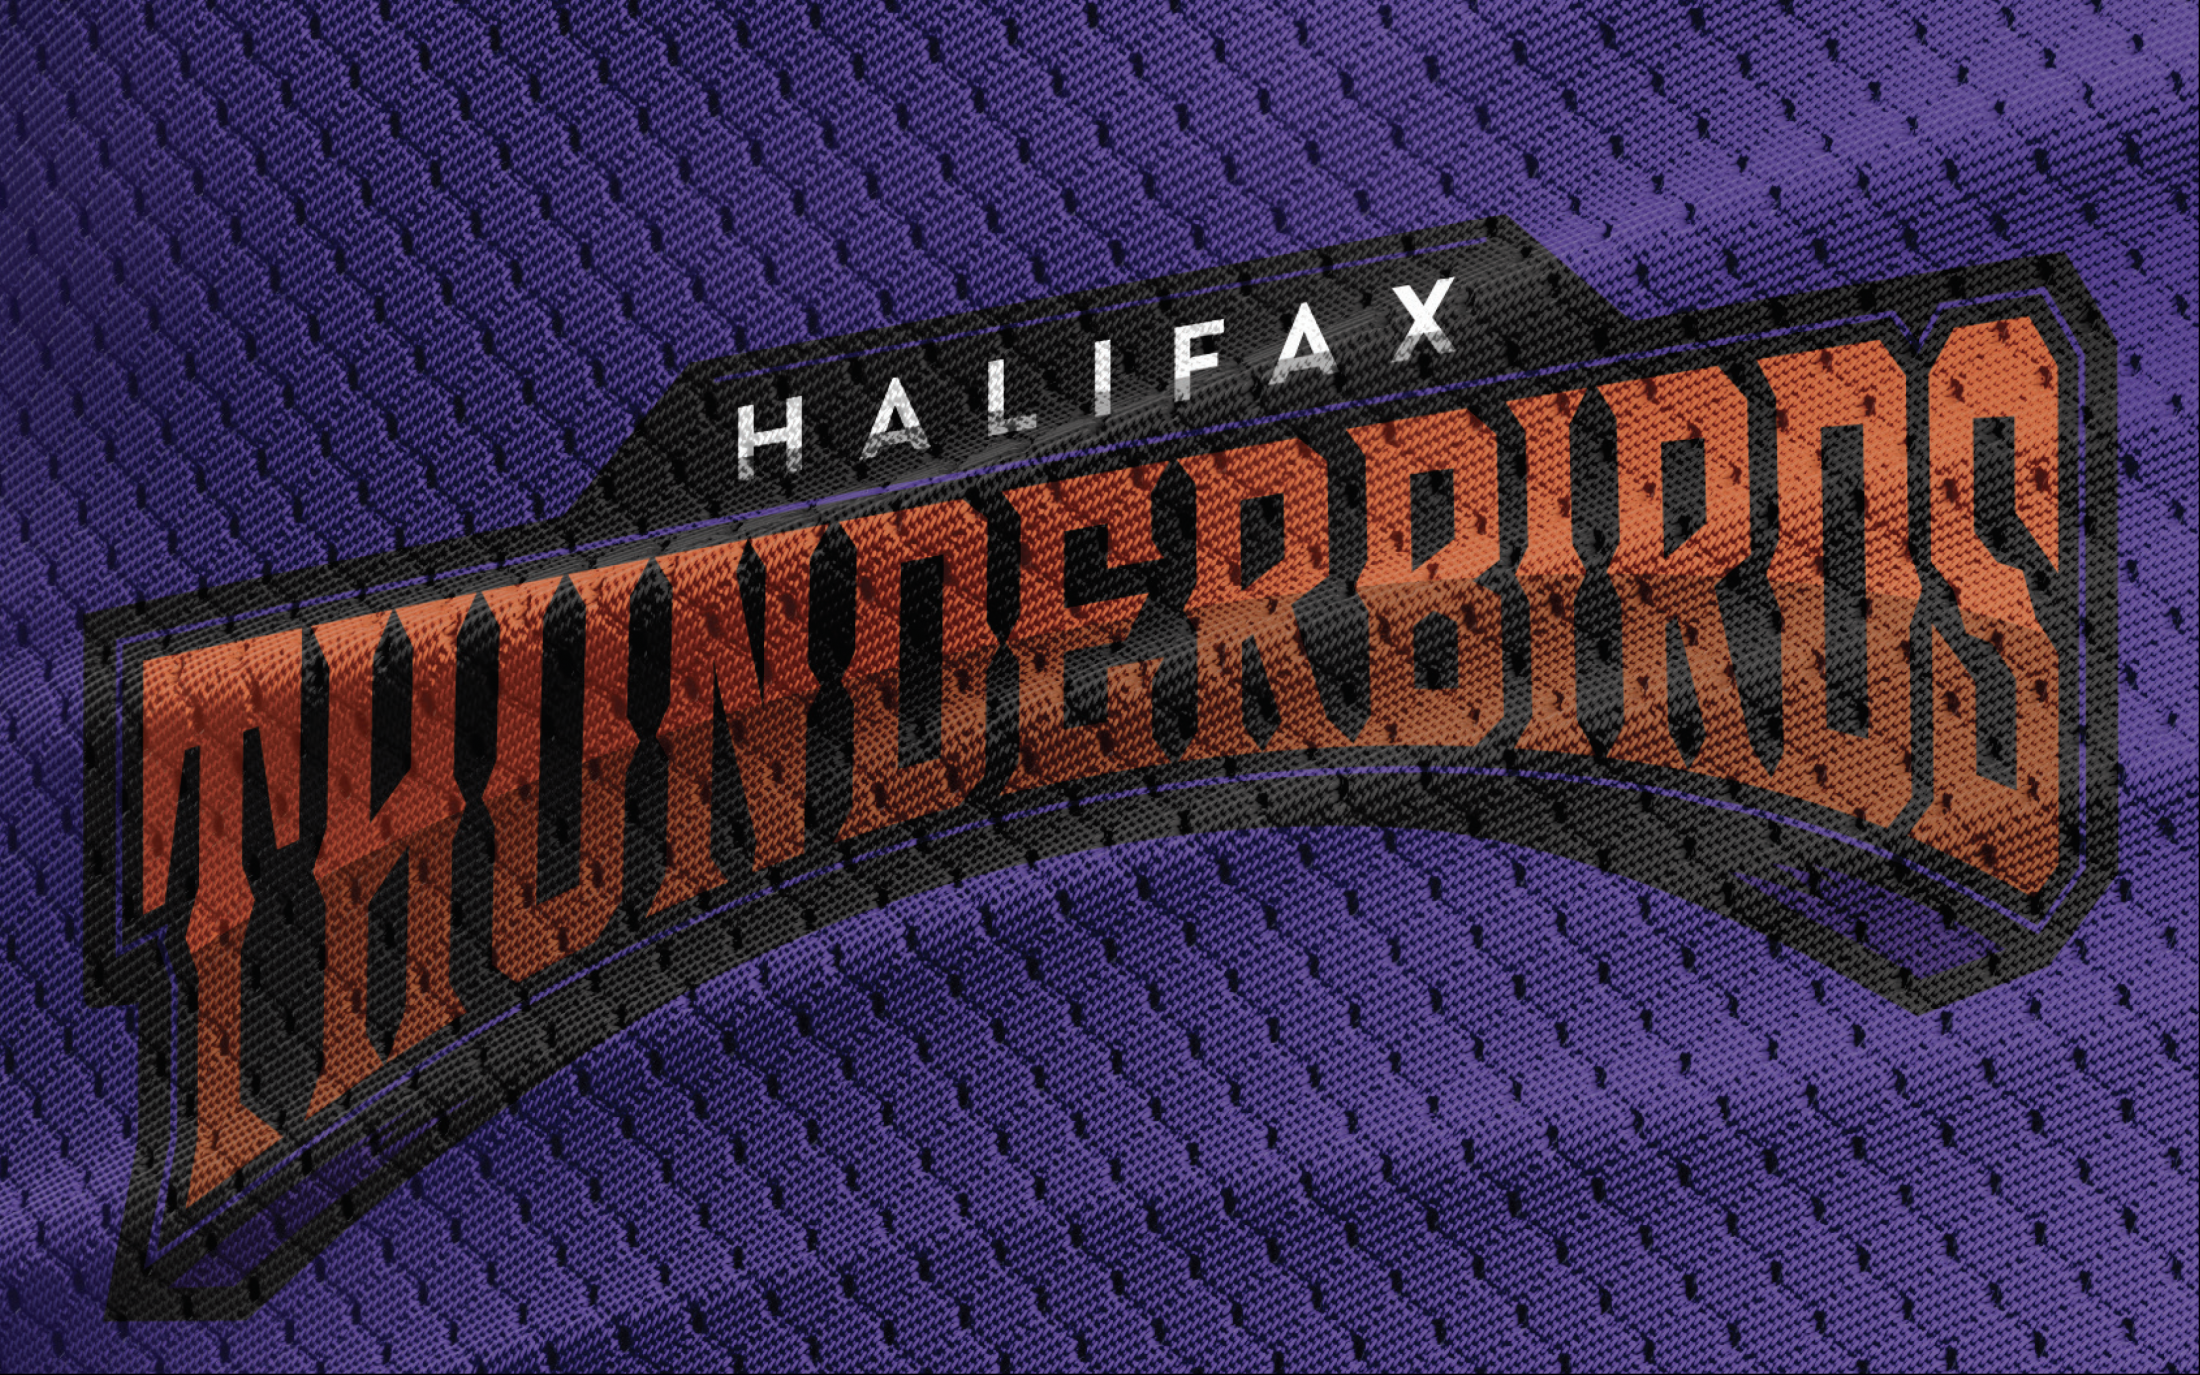 Thumbnail for Halifax Thunderbirds Brand Development